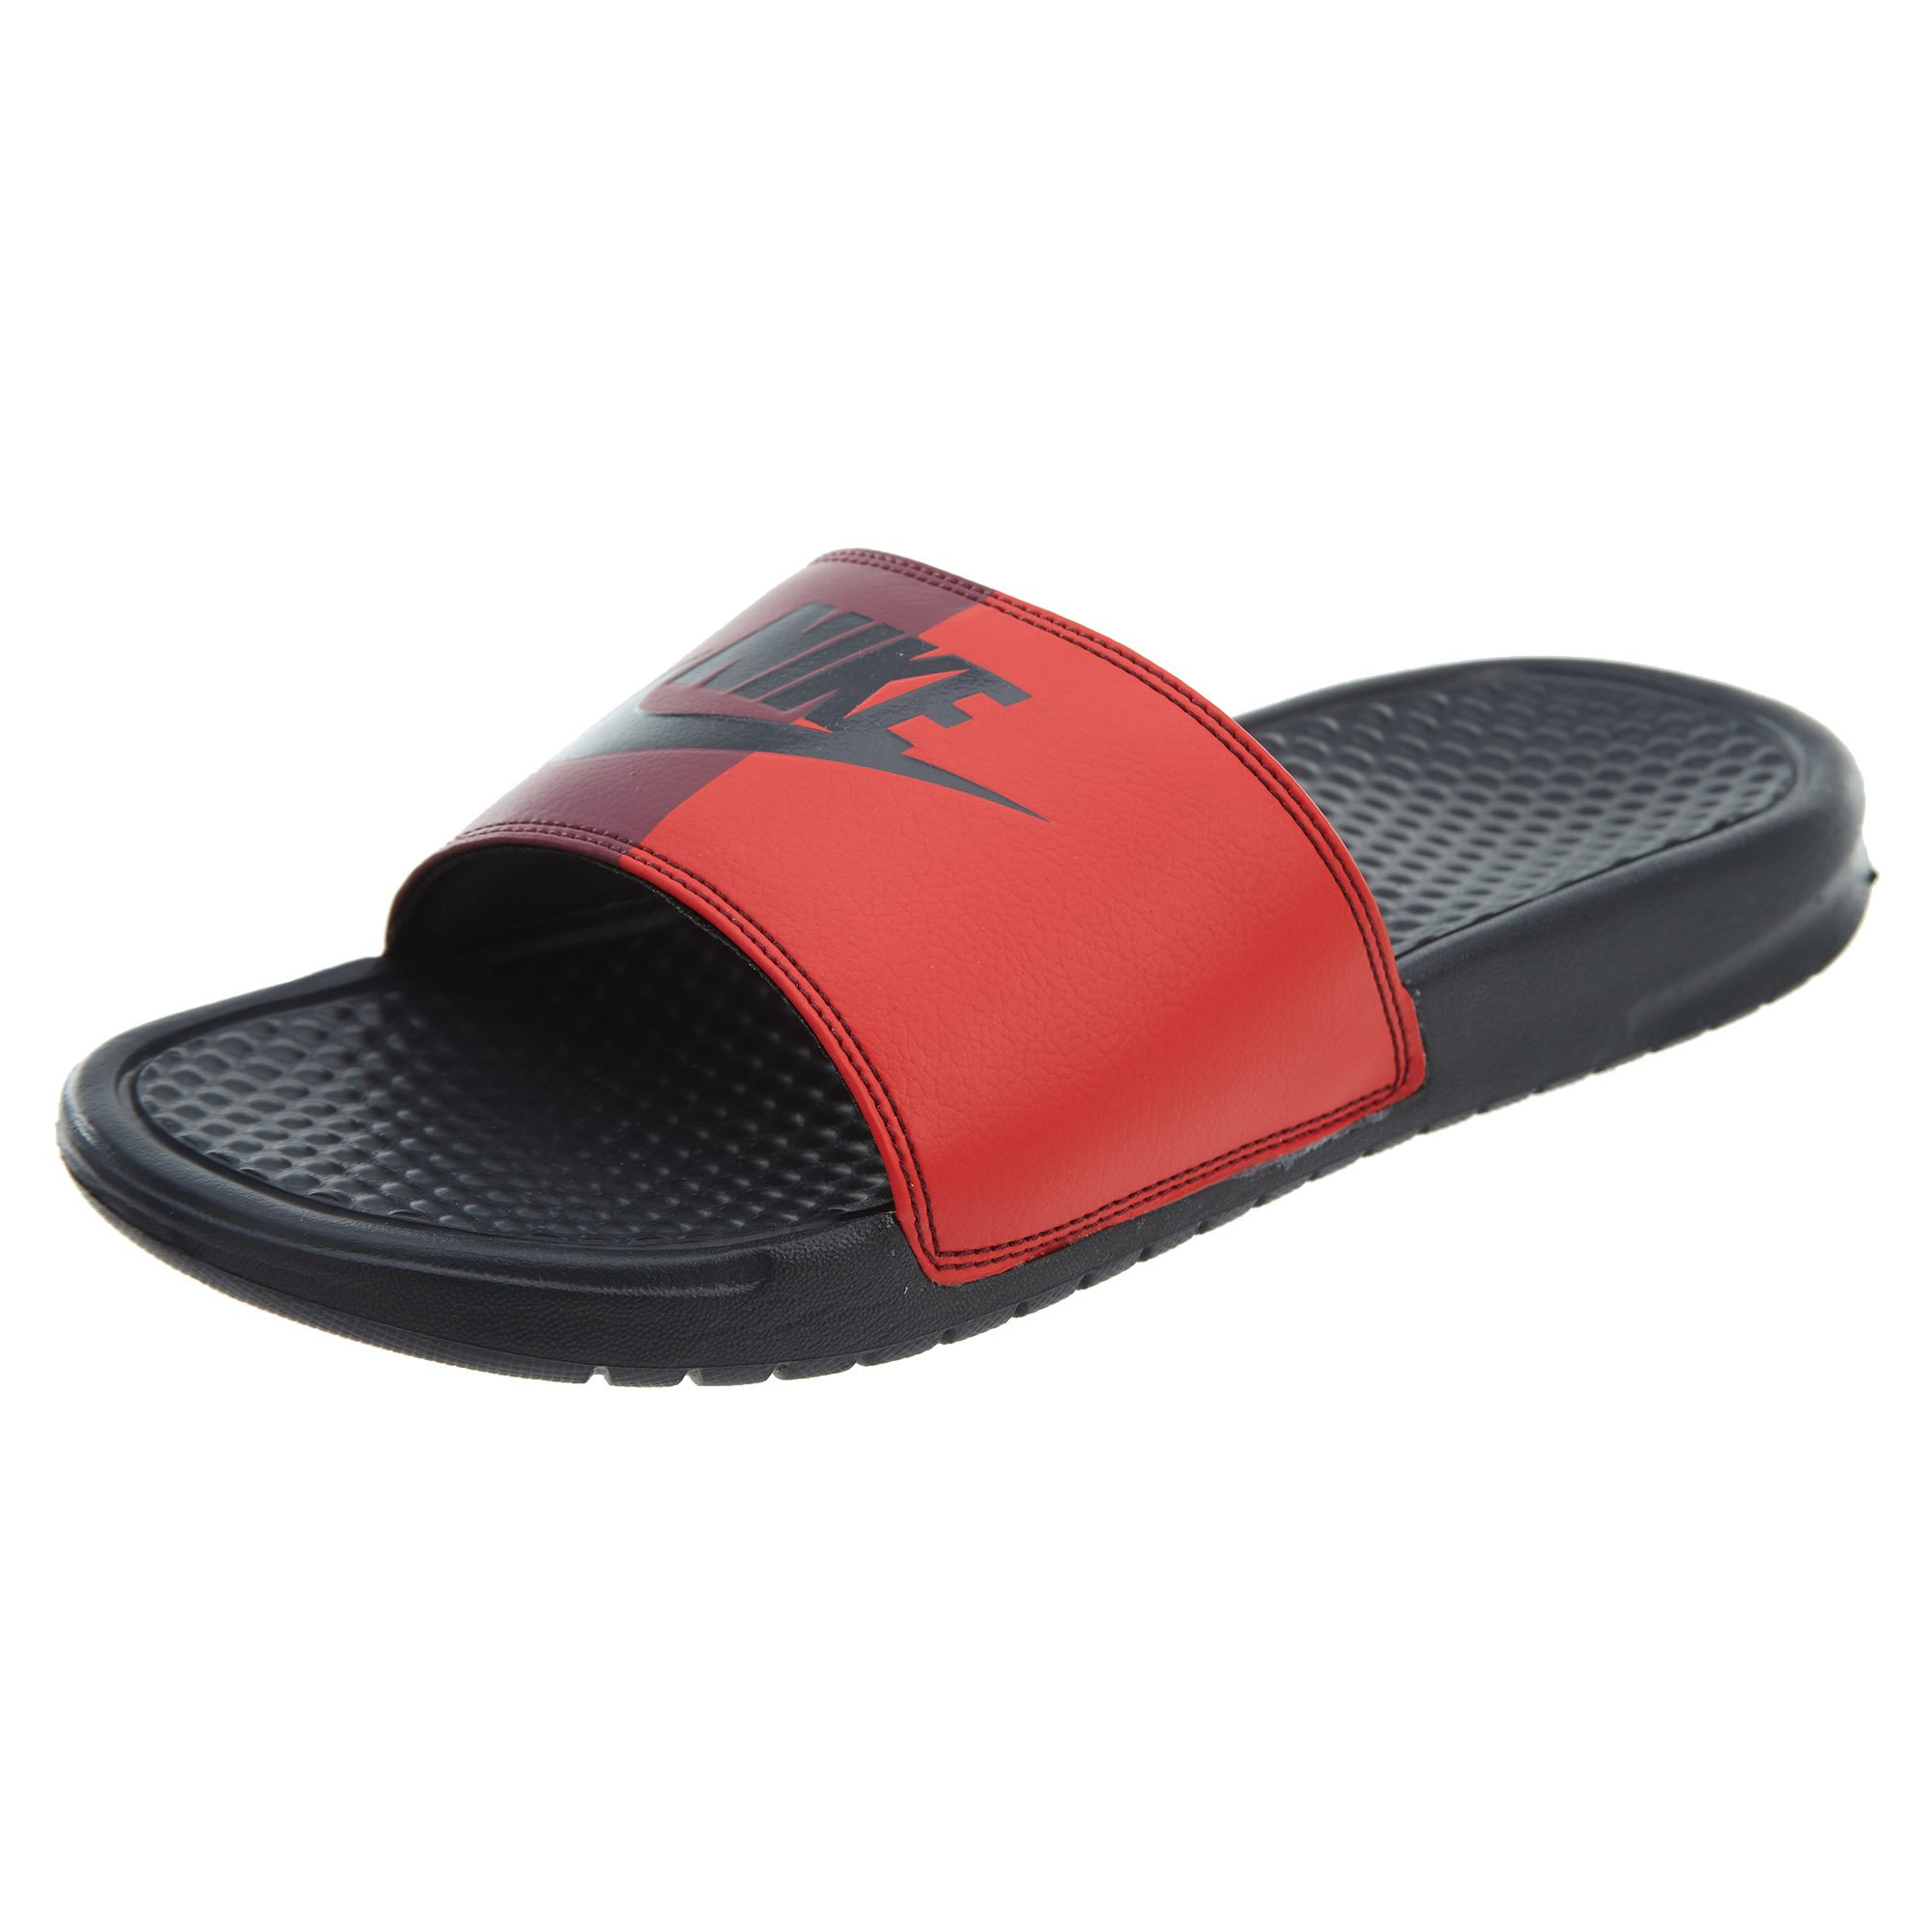 NIKE Men's Benassi Just Do It. Sandal - Anthracite/Anthracite-University RED - 343880-008 - SZ. 14